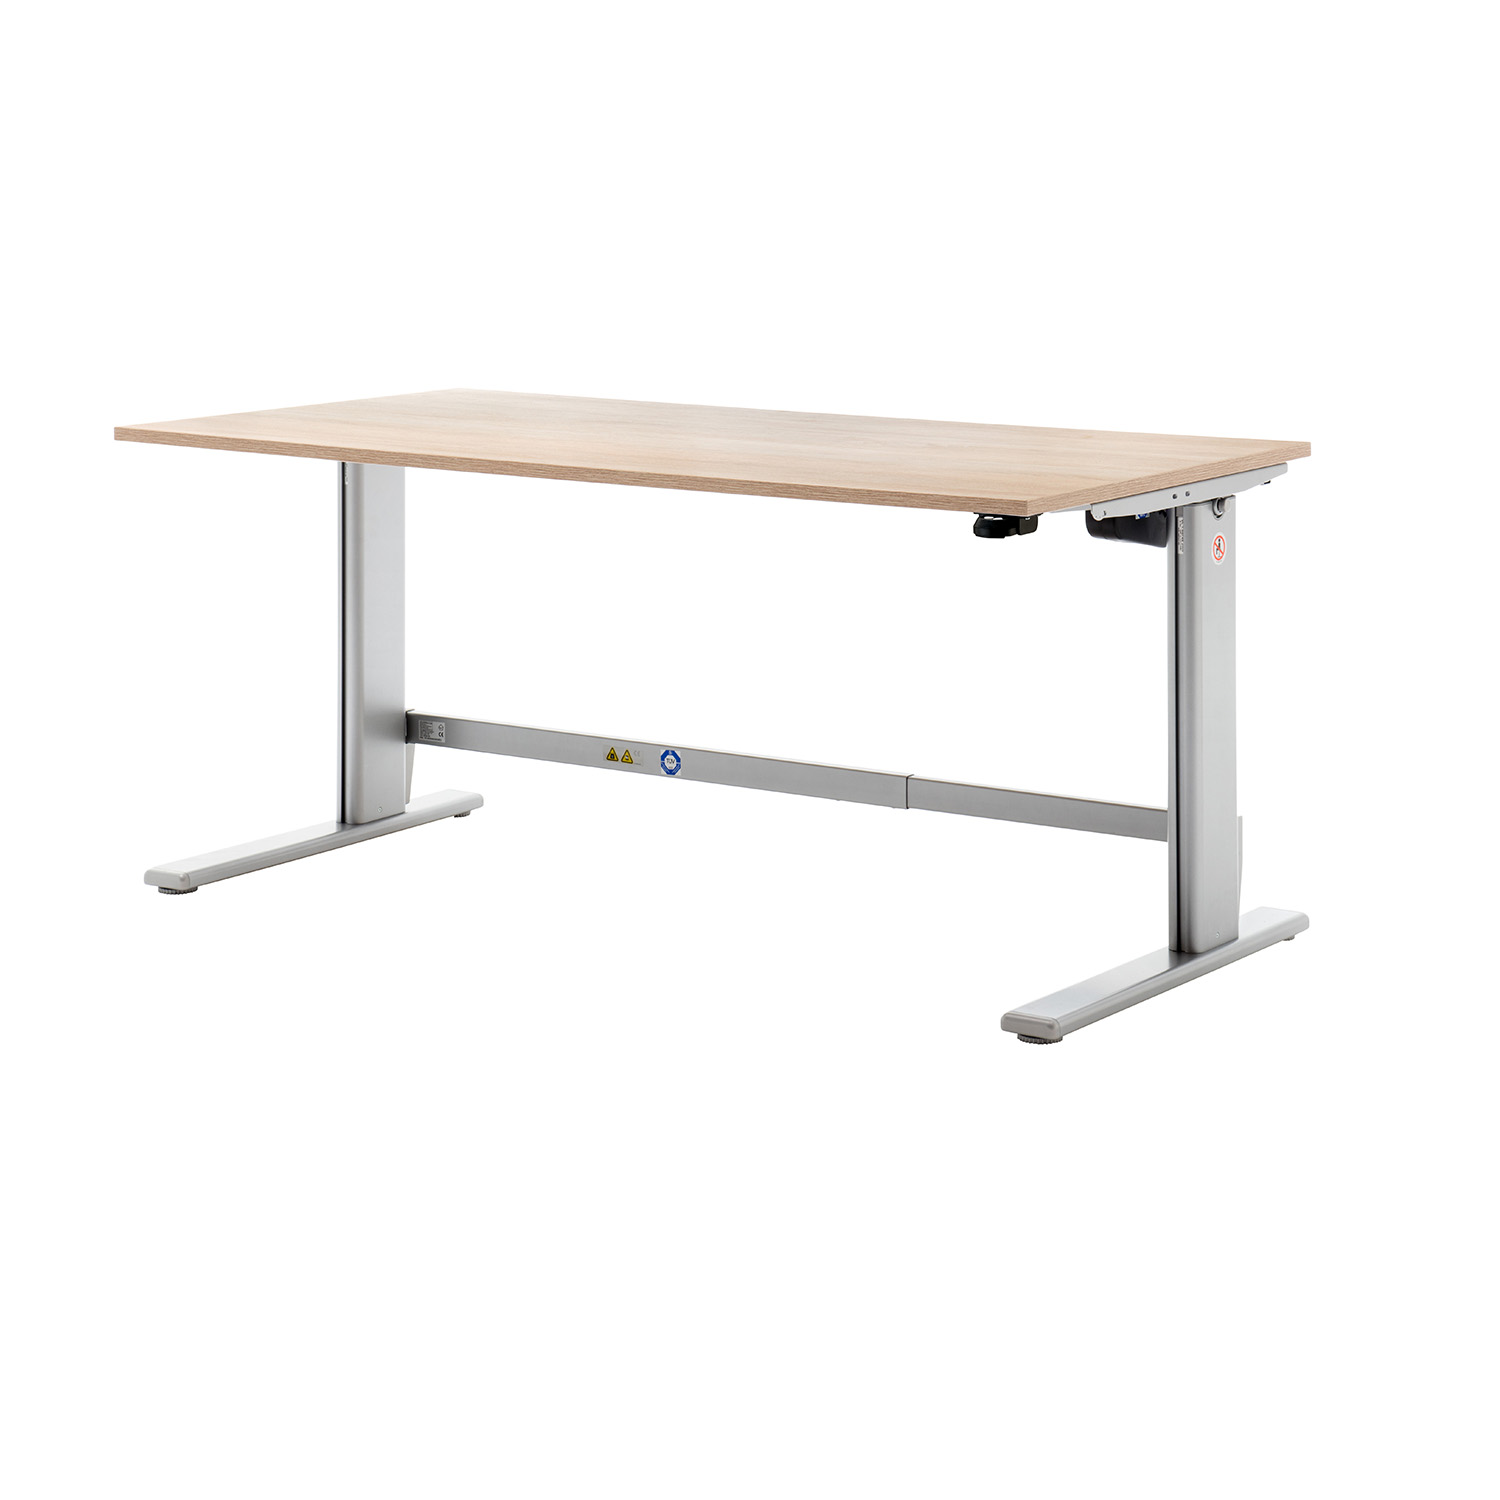 RMF Universaltisch E-TABLE